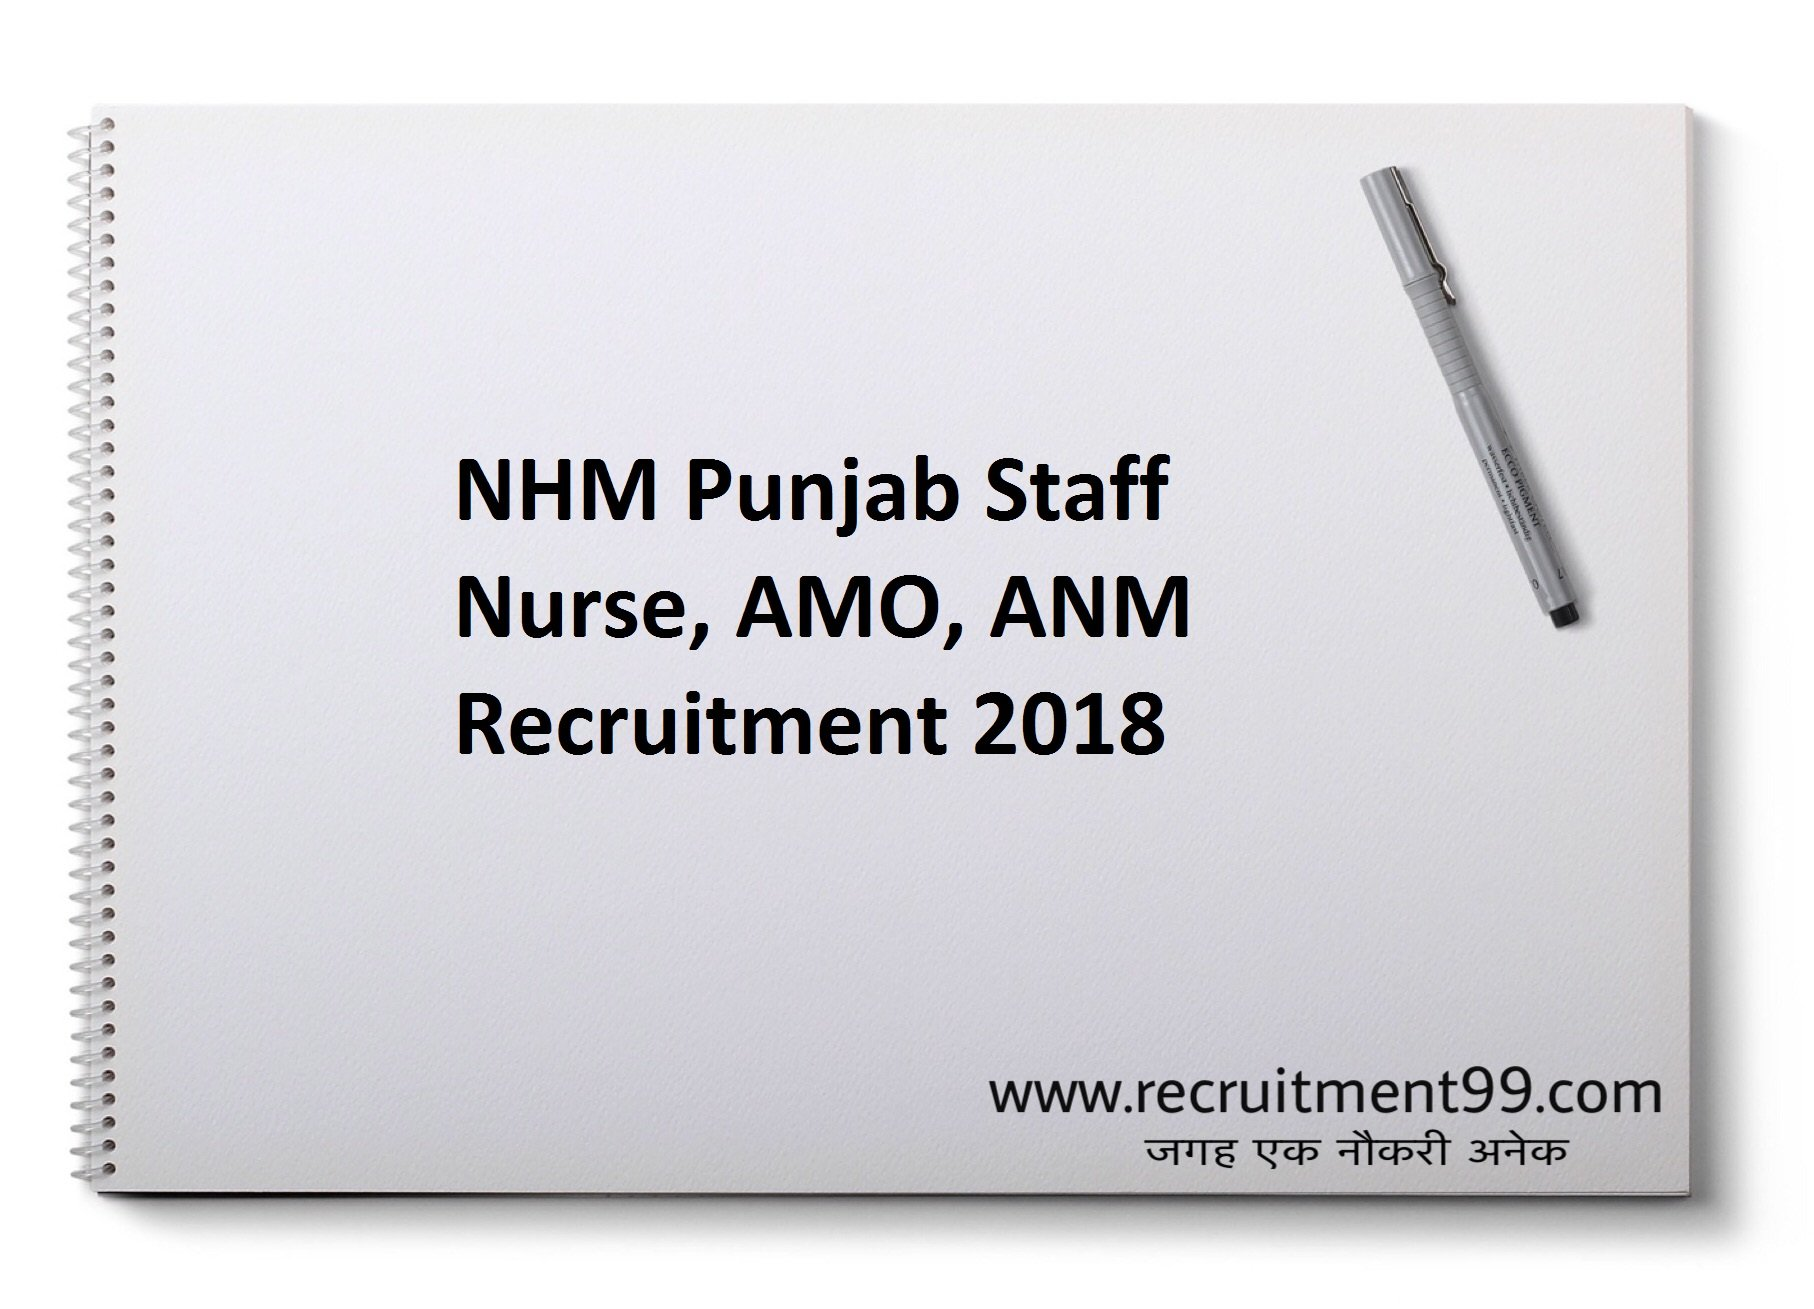 NHM Punjab Staff Nurse, AMO, ANM Recruitment Admit Card Result 2018